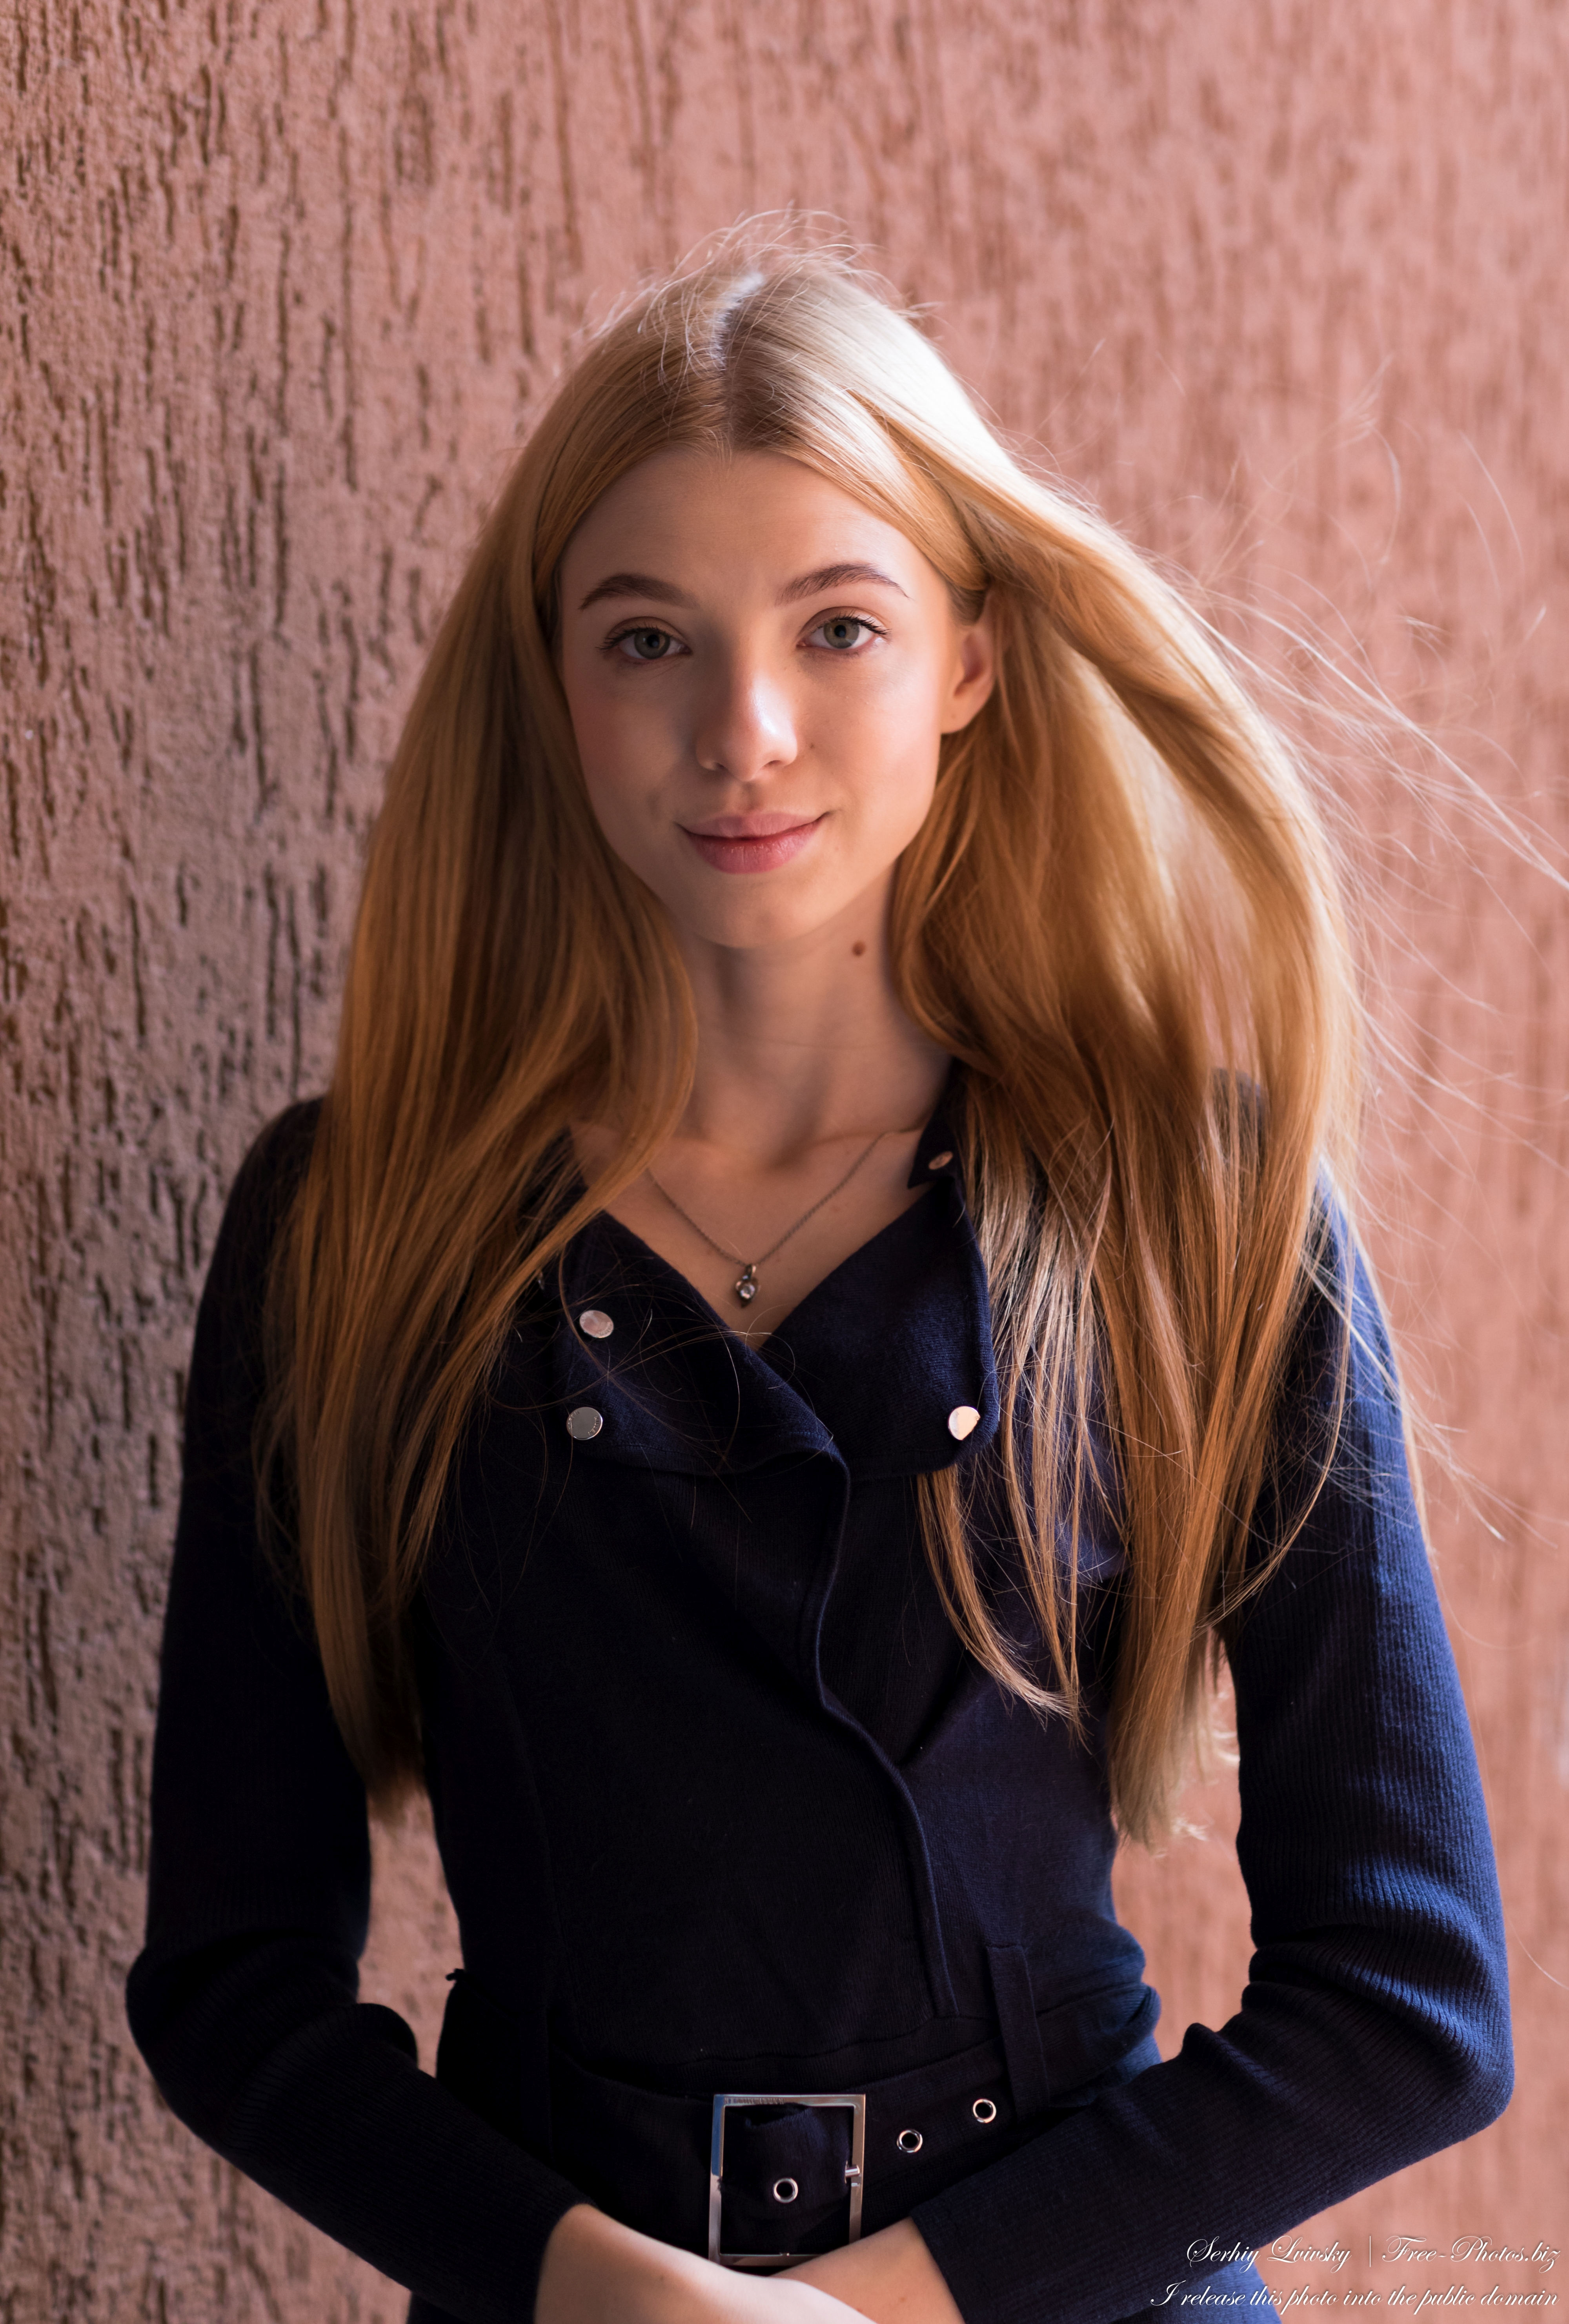 anna_an_18-year-old_girl_in_october_2020_by_serhiy_lvivsky_20